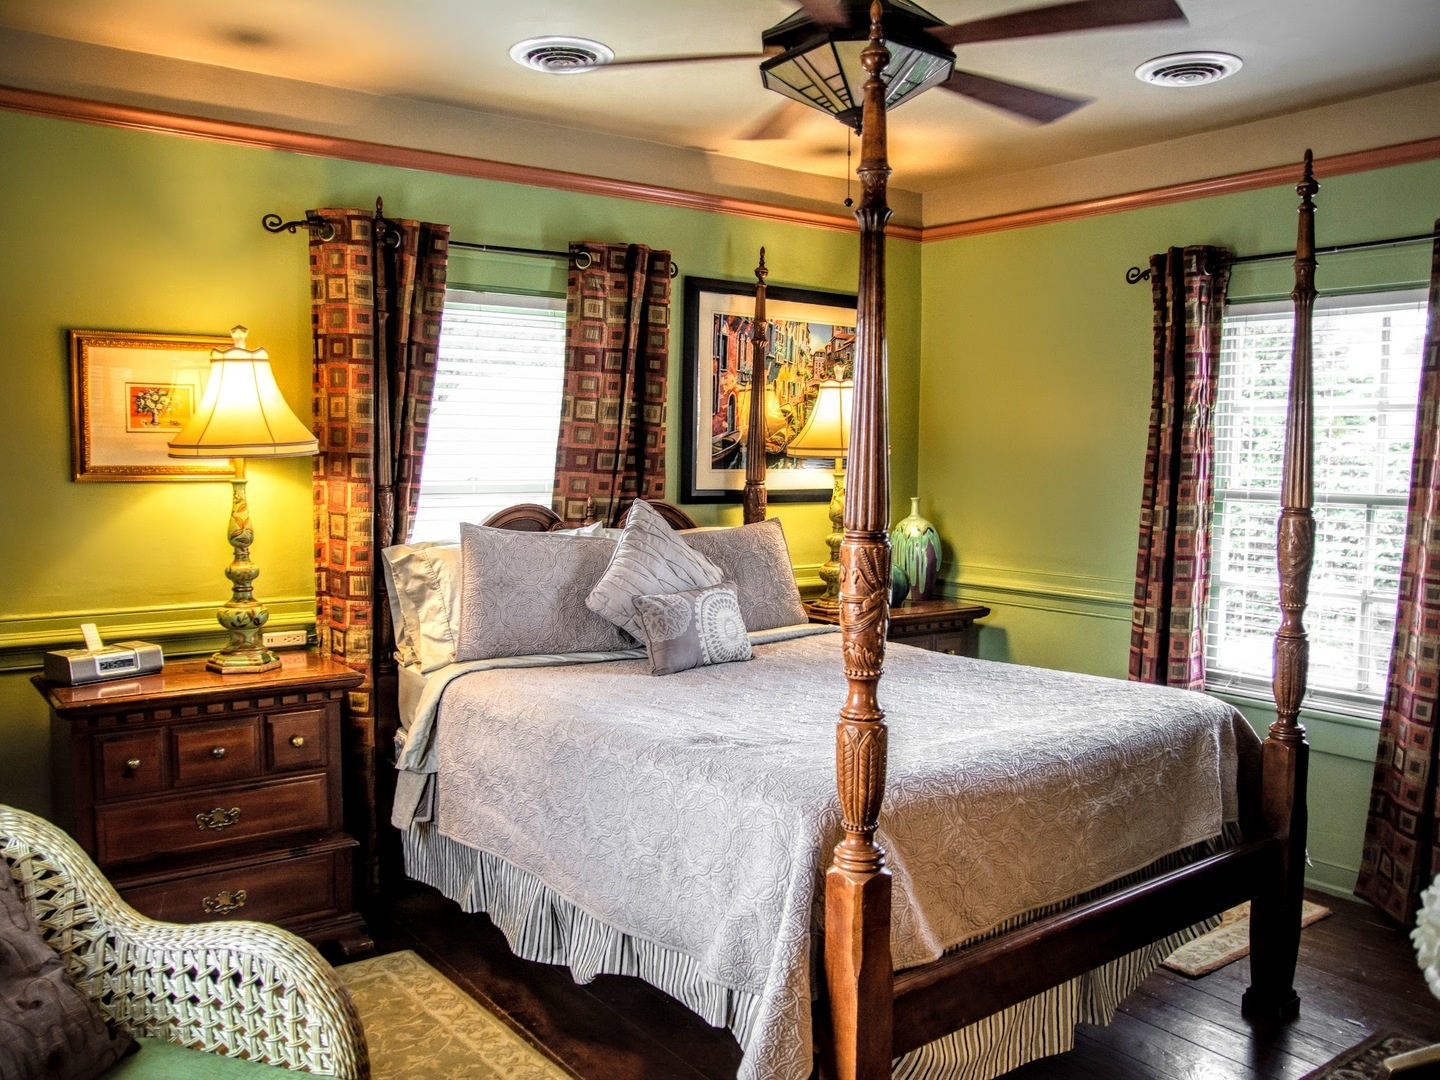 A bedroom with a bed and a chair in a room at Williamsburg Manor Bed & Breakfast.